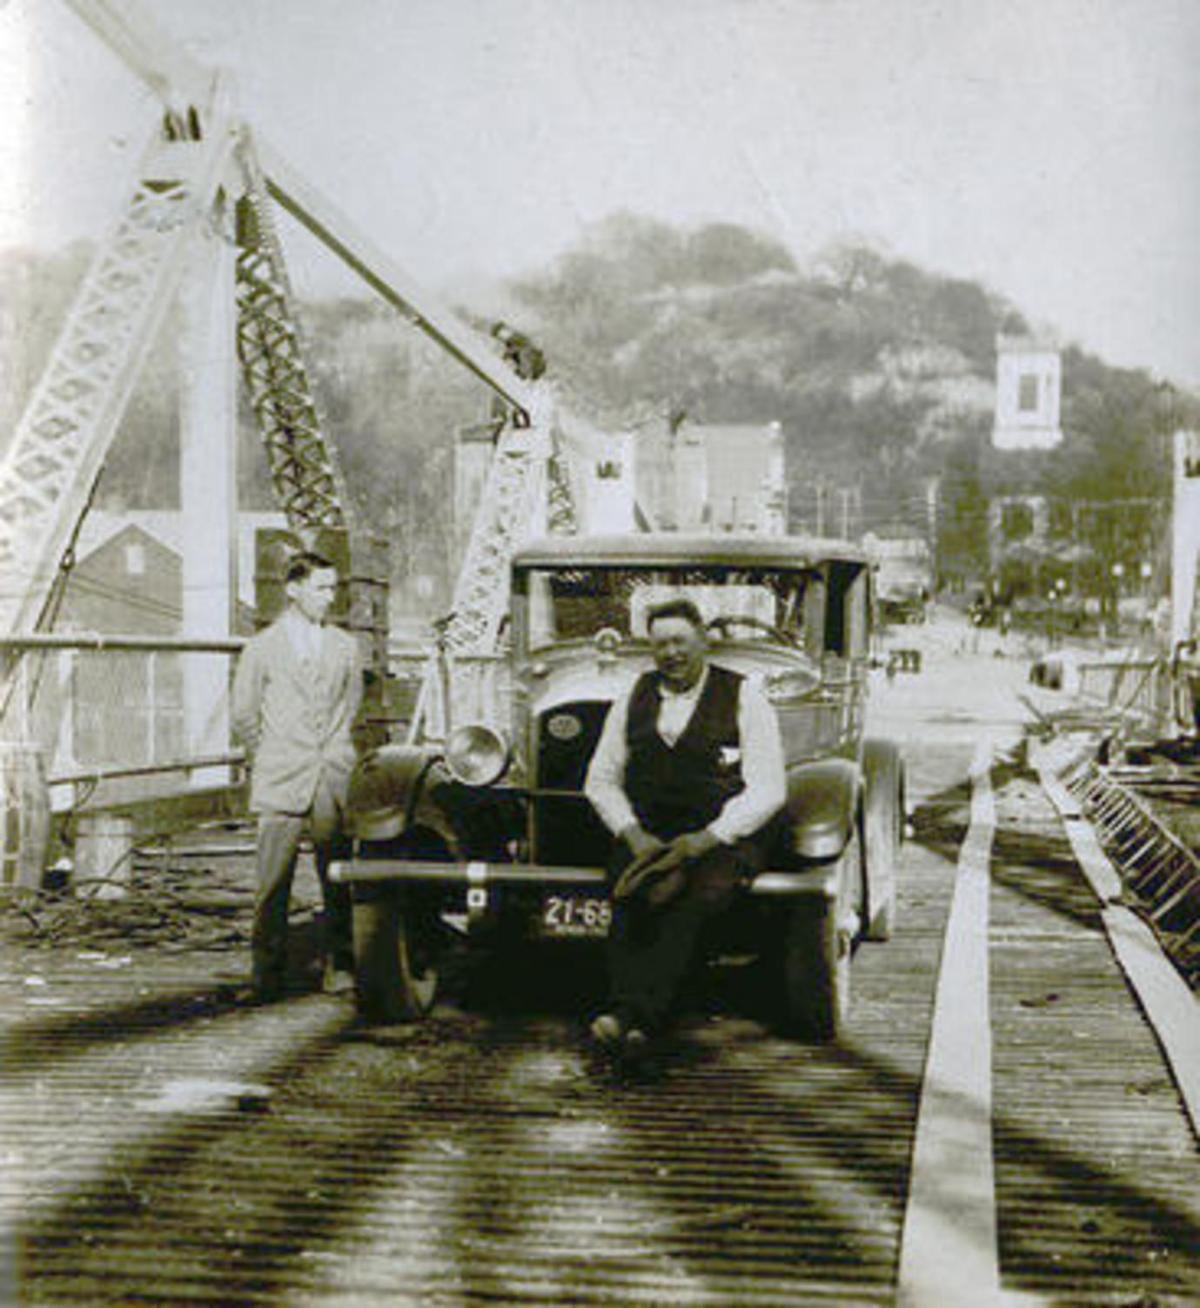 In 1928 Engineer Charles Vogel (Left) and George Cumpston (Center) were the first two people to cross the Silver Bridge in a vehicle after its construction.